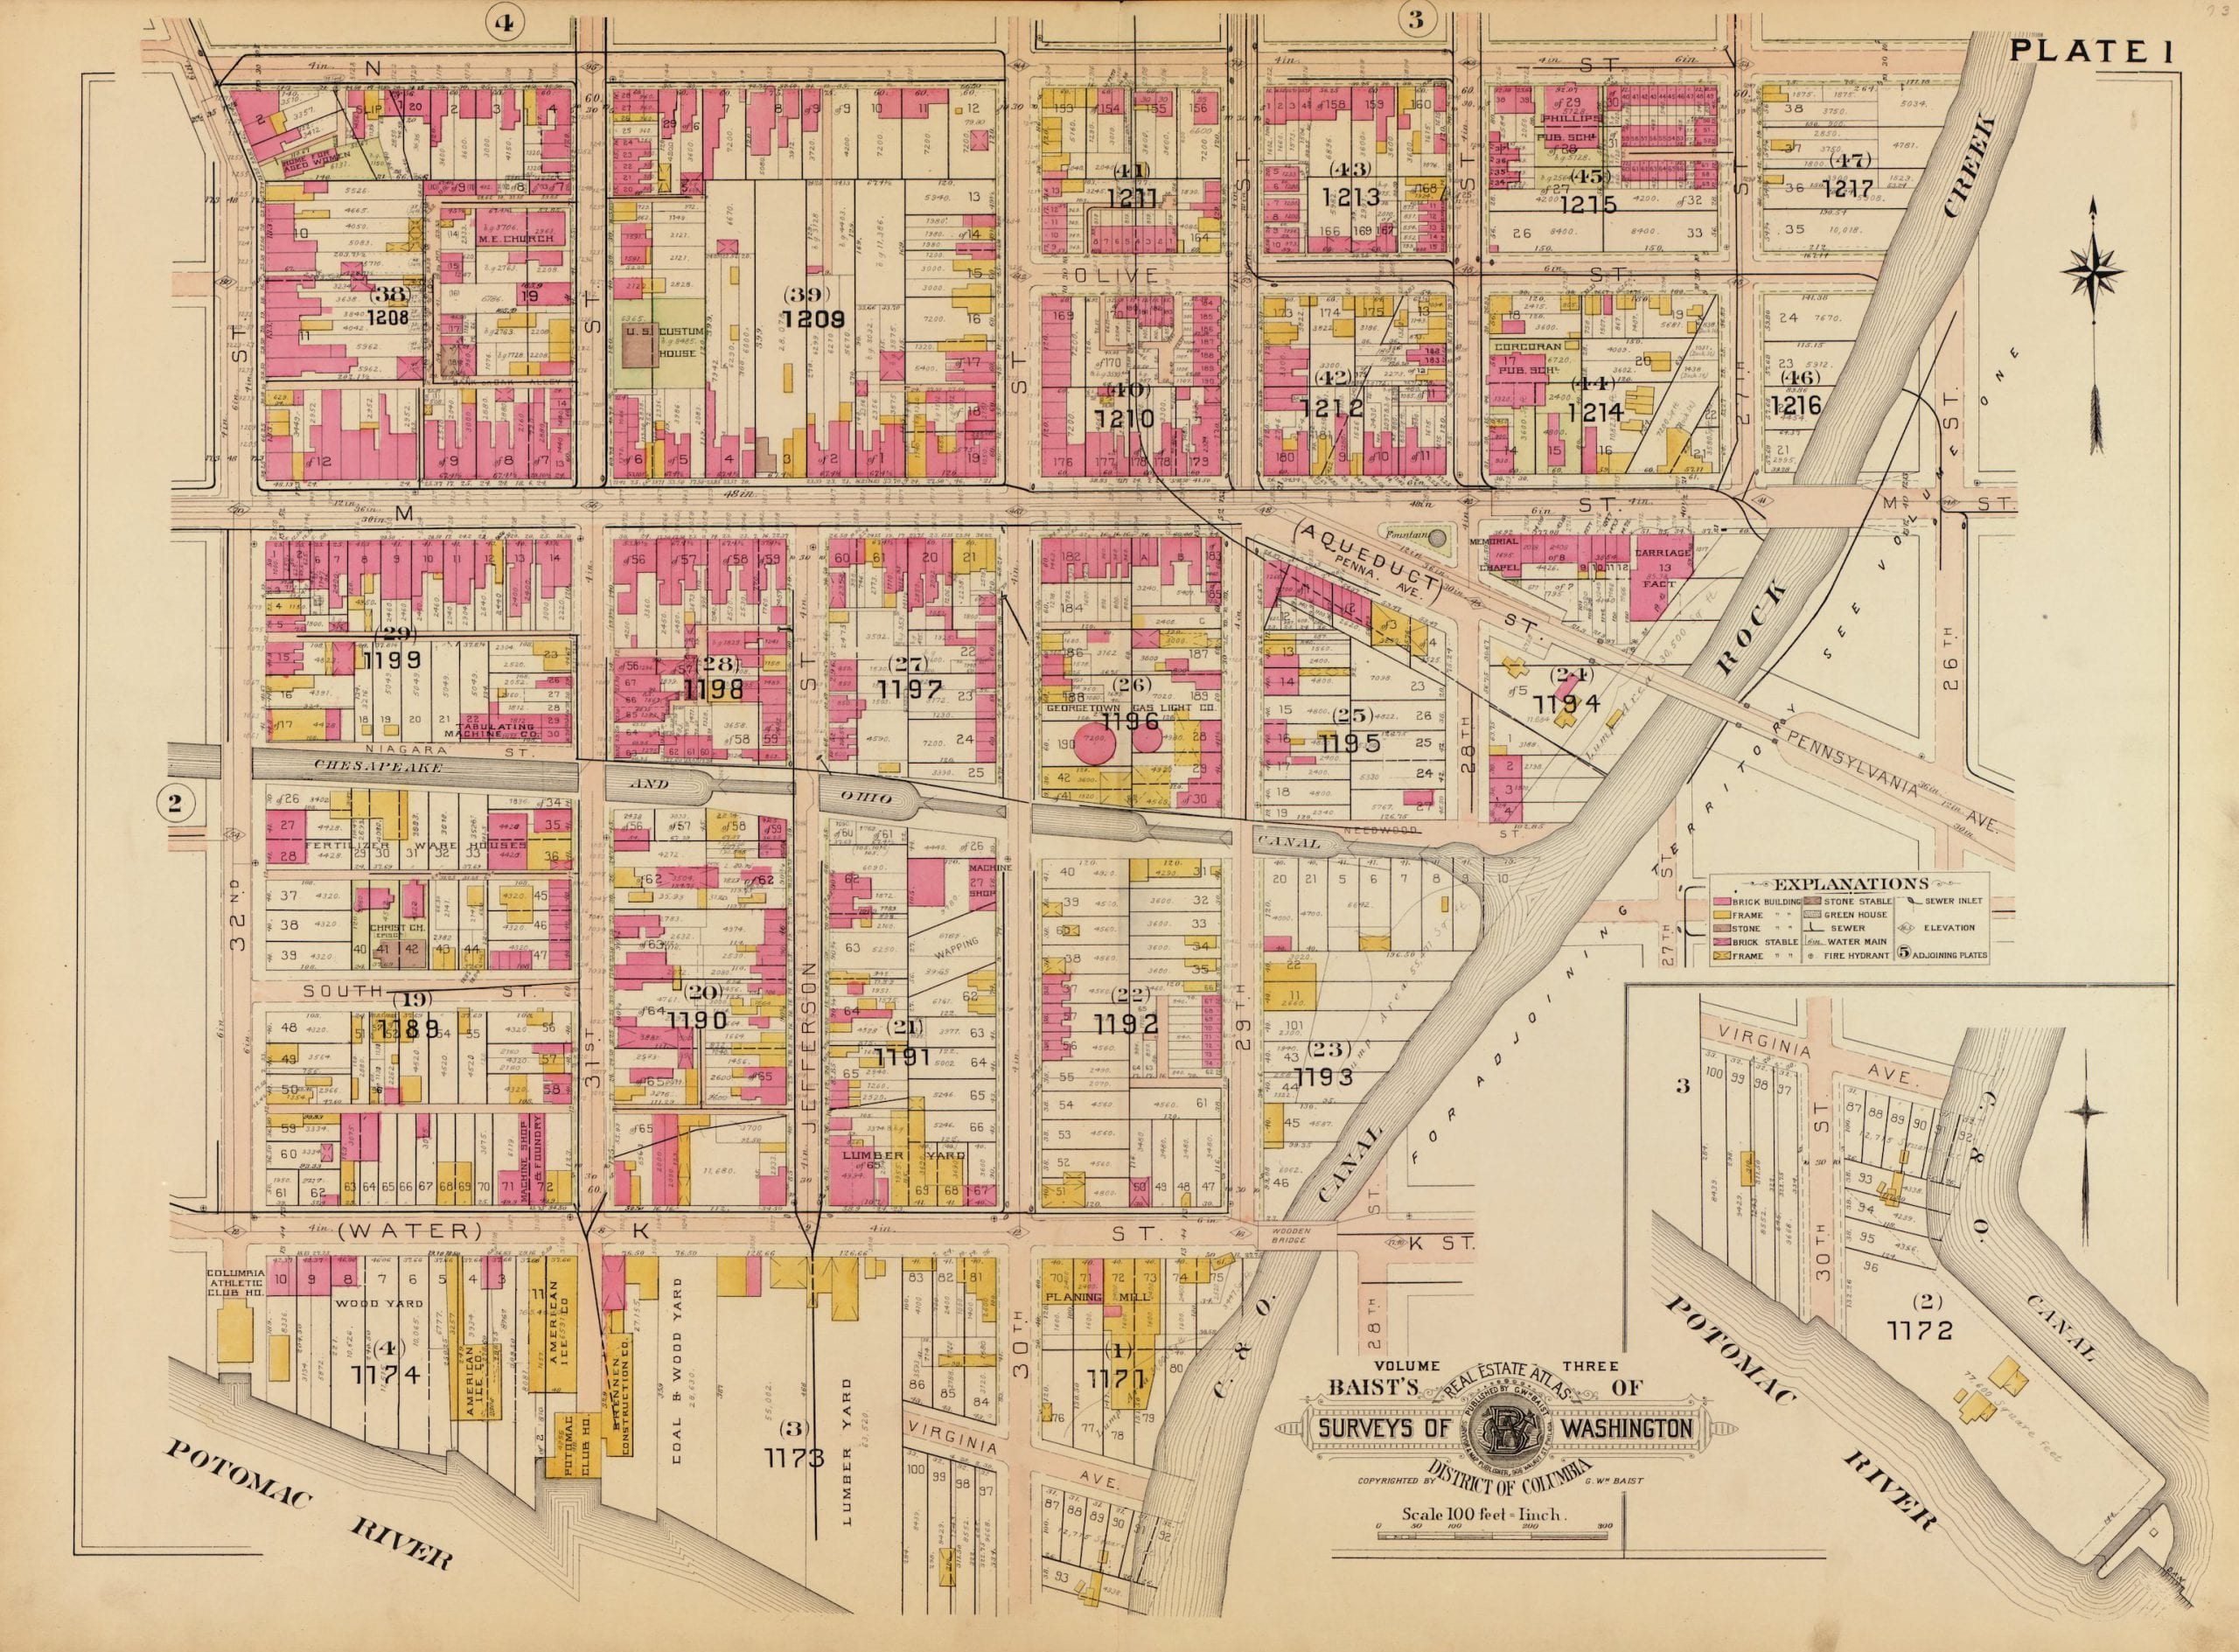 1903 map of Georgetown